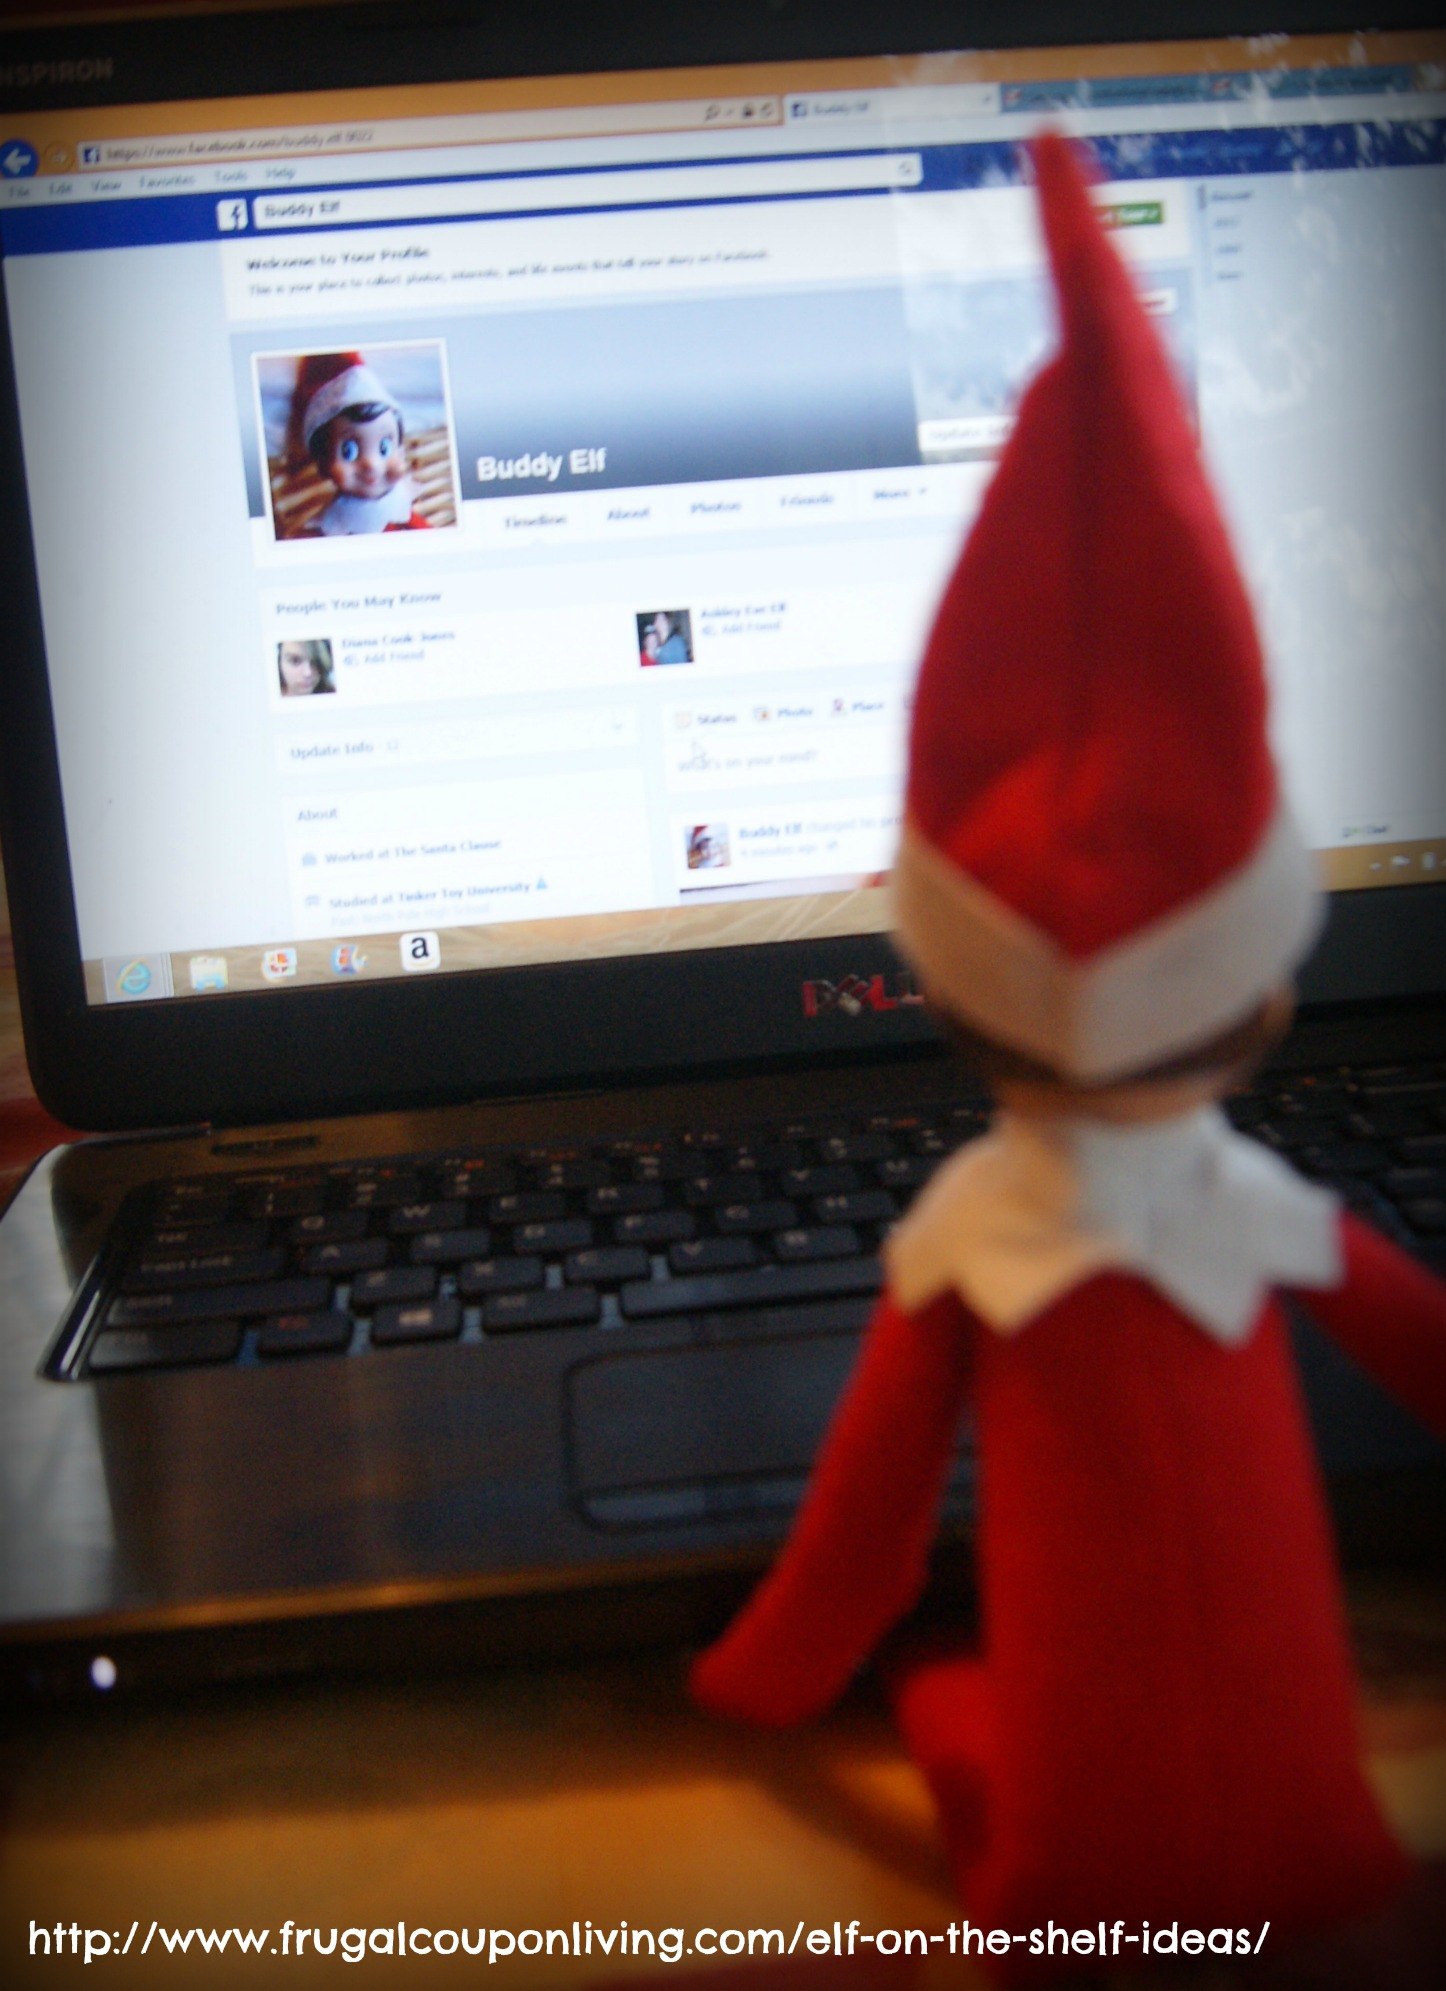 Buddy the elf on the shelf ideas on facebook frugal coupon living